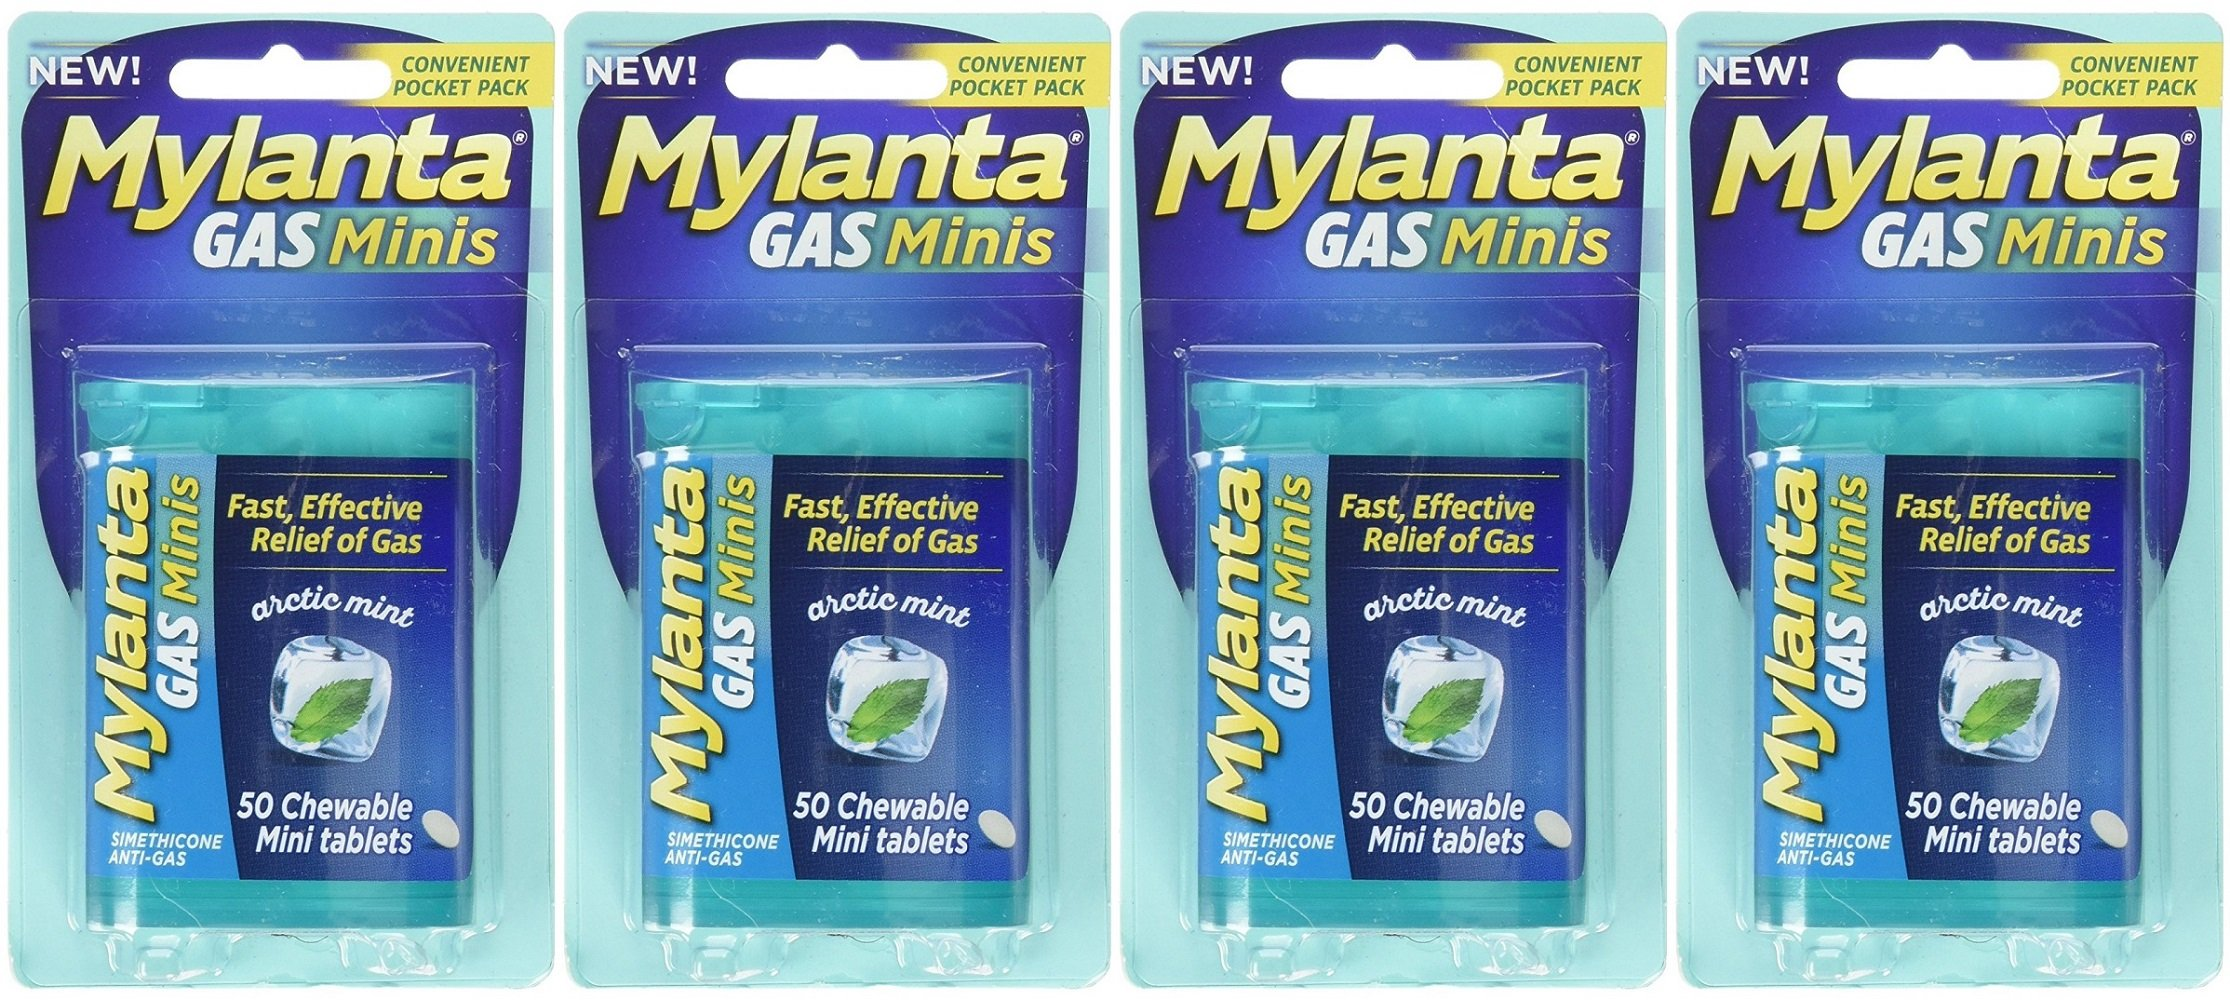 Mylanta Gas Mini Chewable Tablets, Arctic Mint 50 Count (4 Pack)